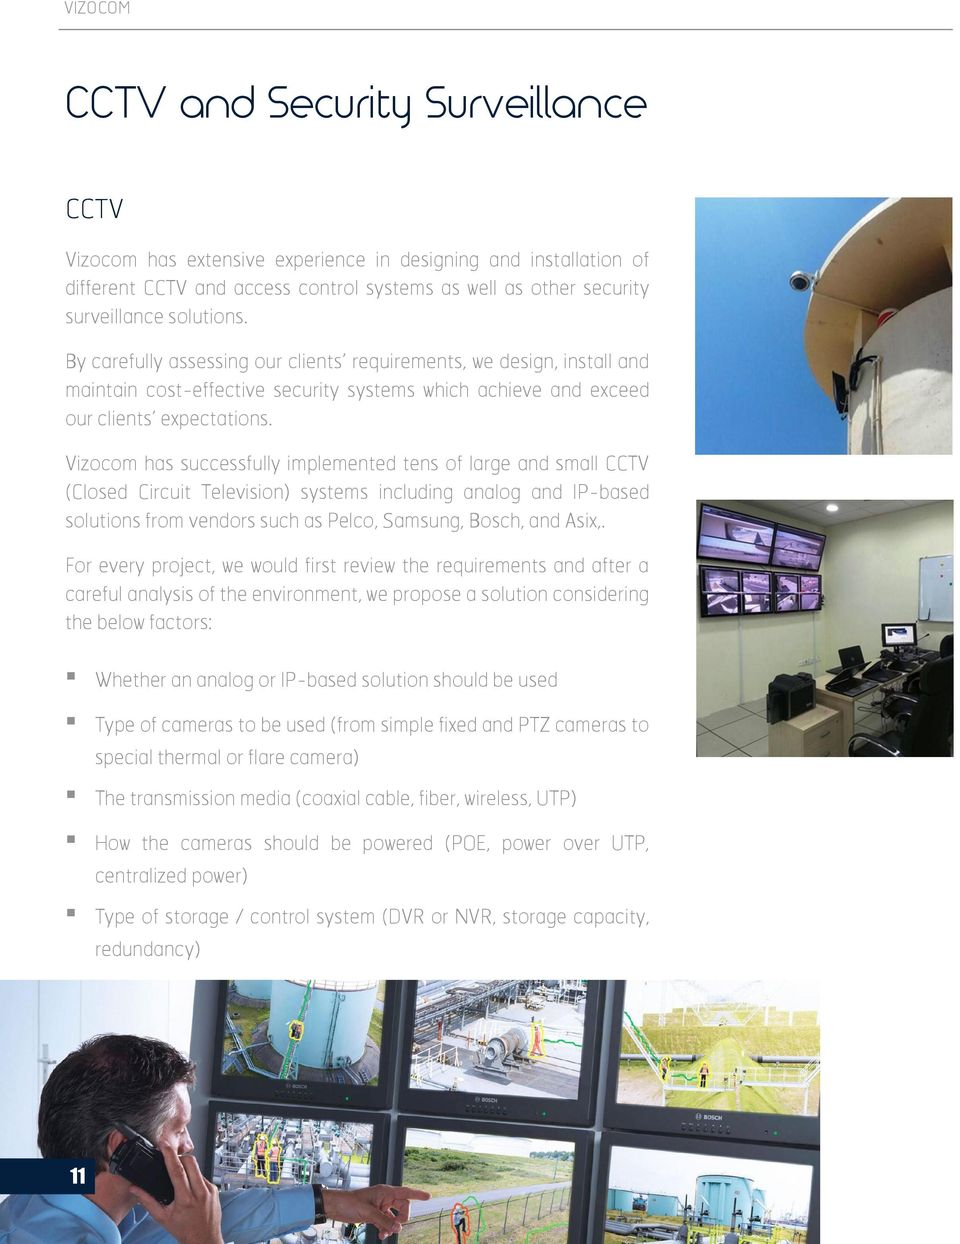 Vizocom has successfully implemented tens of large and small CCTV (Closed Circuit Television) systems including analog and IP-based solutions from vendors such as Pelco, Samsung, Bosch, and Asix,.